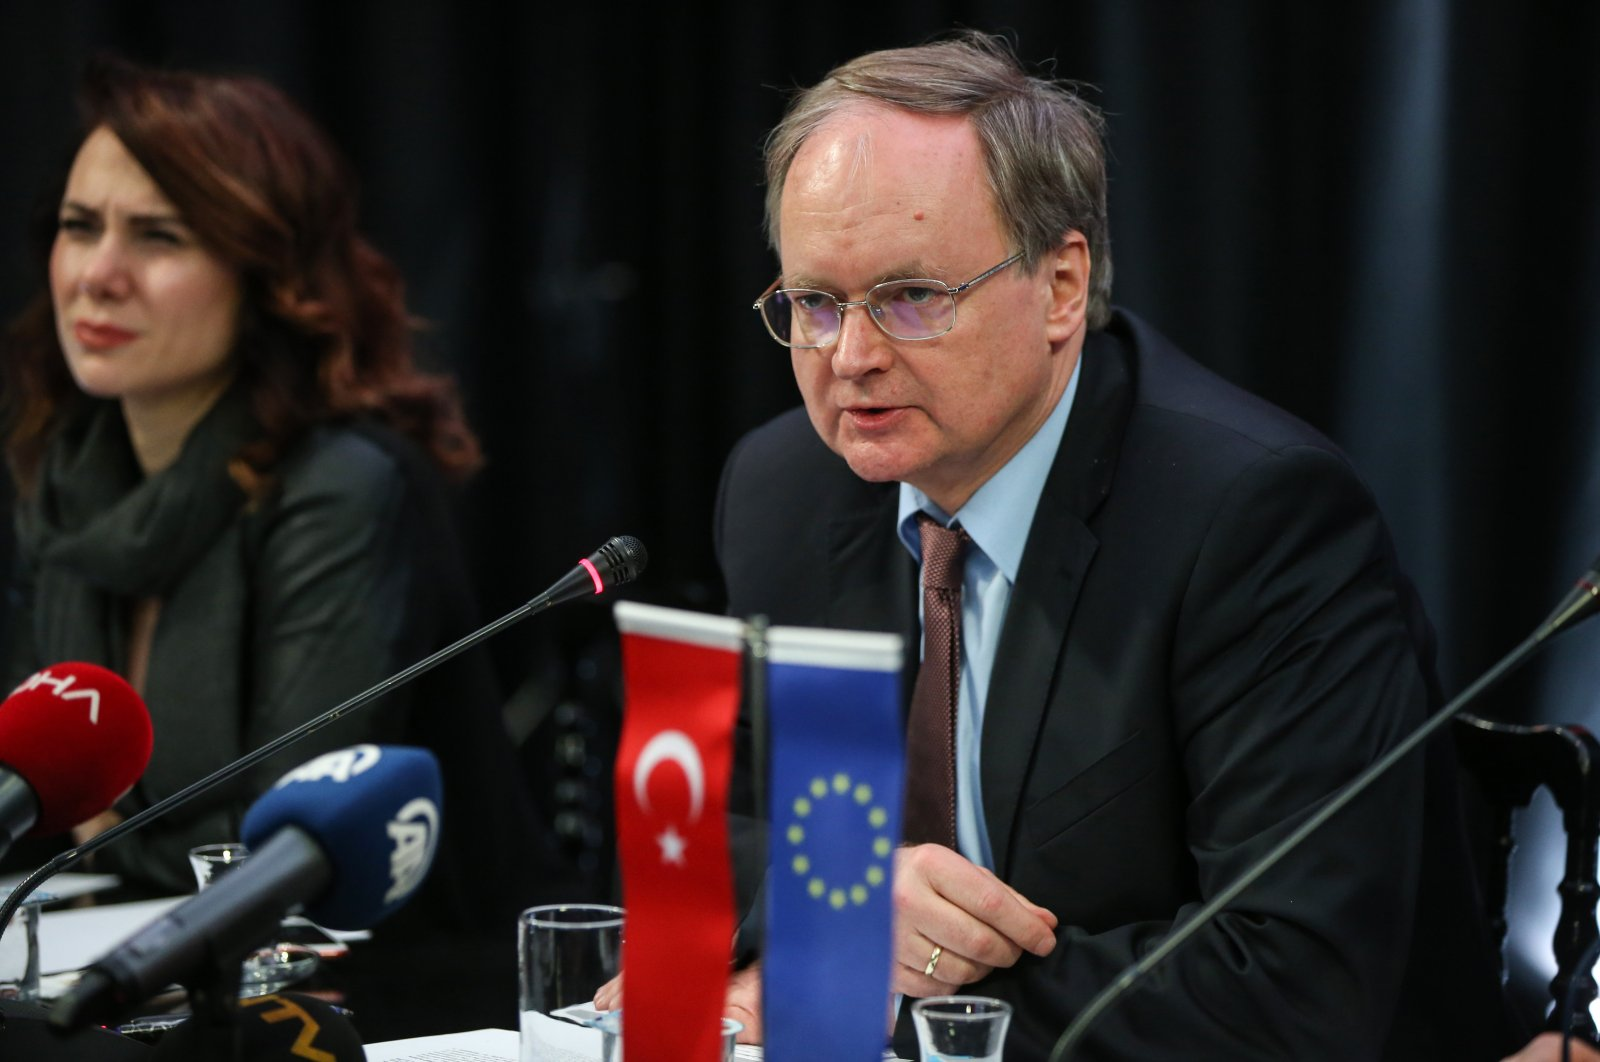 Christian Berger, the head of the EU delegation to Turkey. (AA Photo)